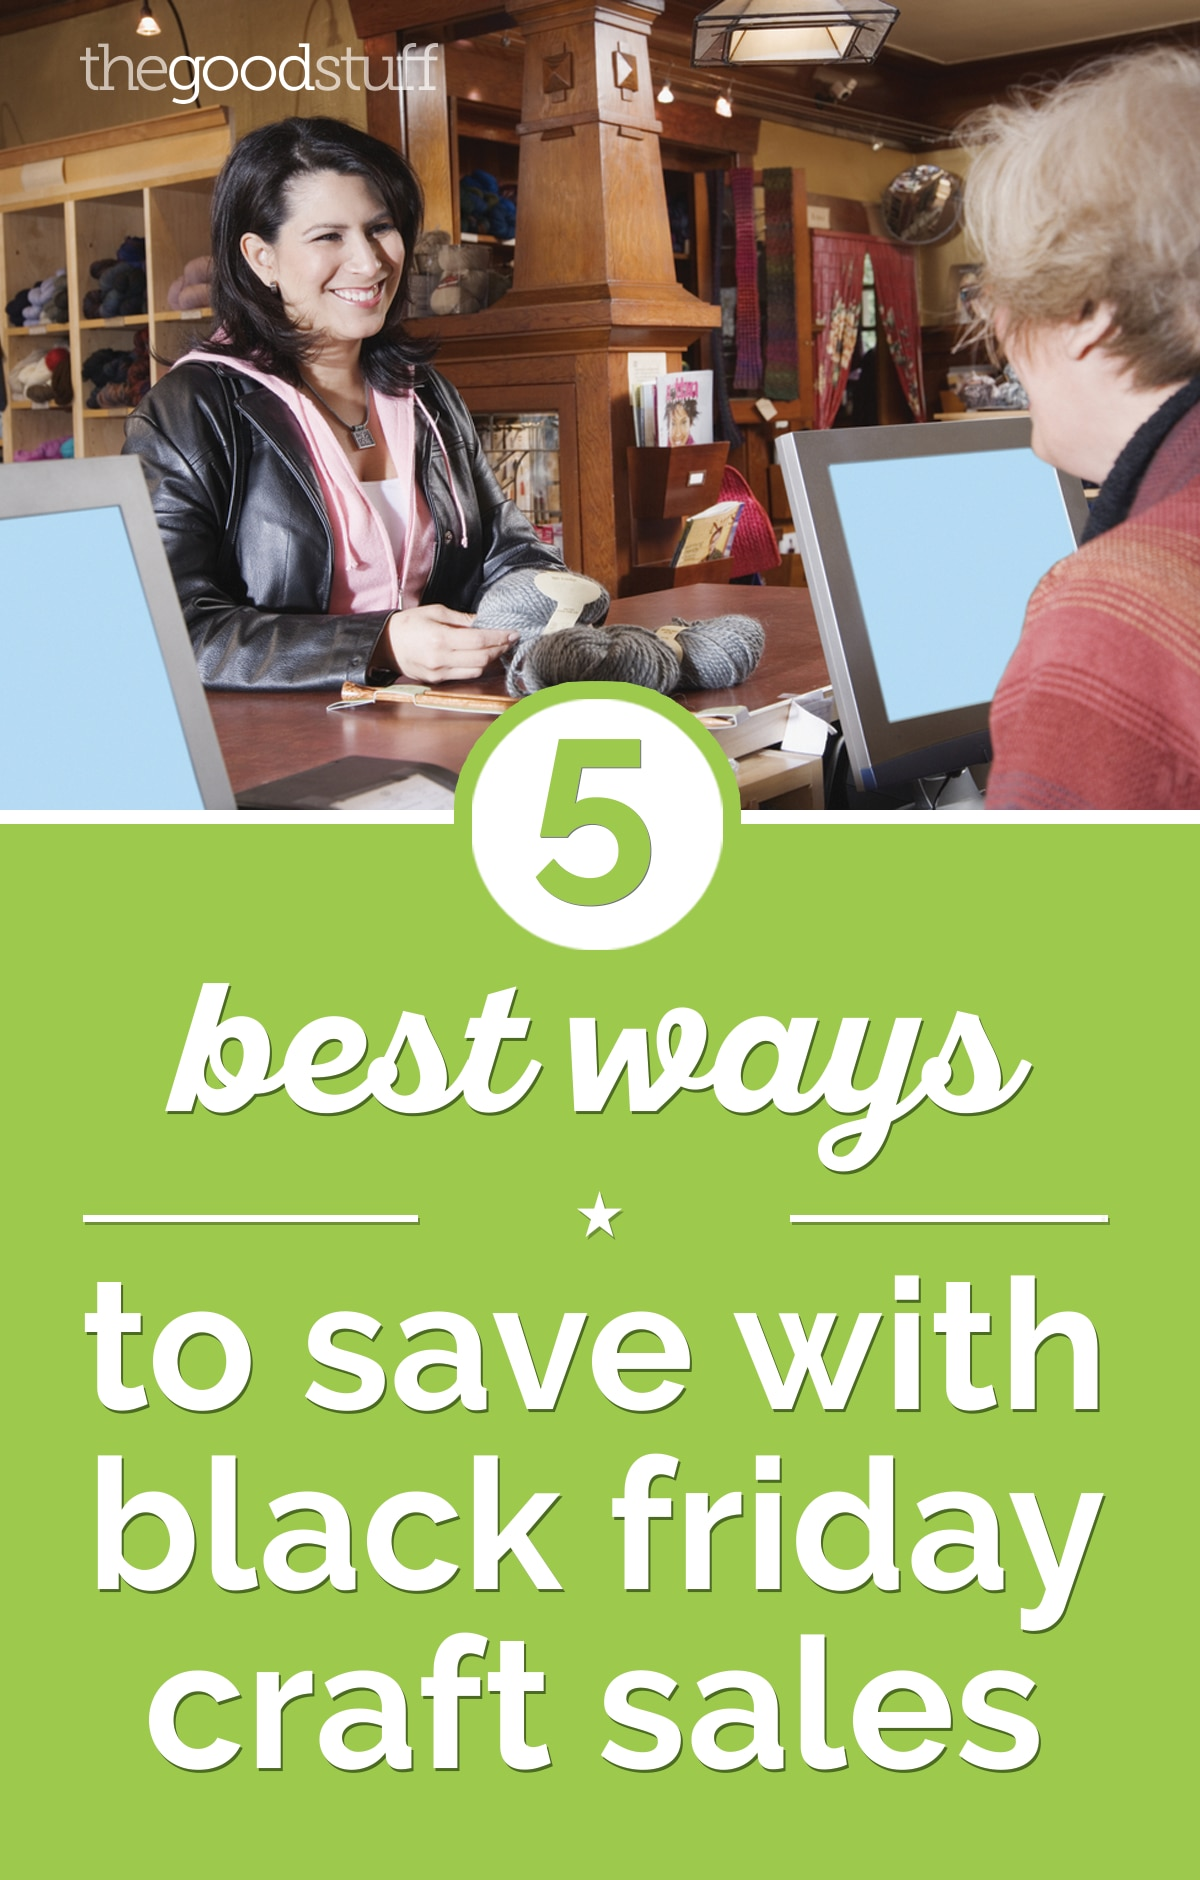 5 Best Ways to Save with Black Friday Craft Sales | thegoodstuff